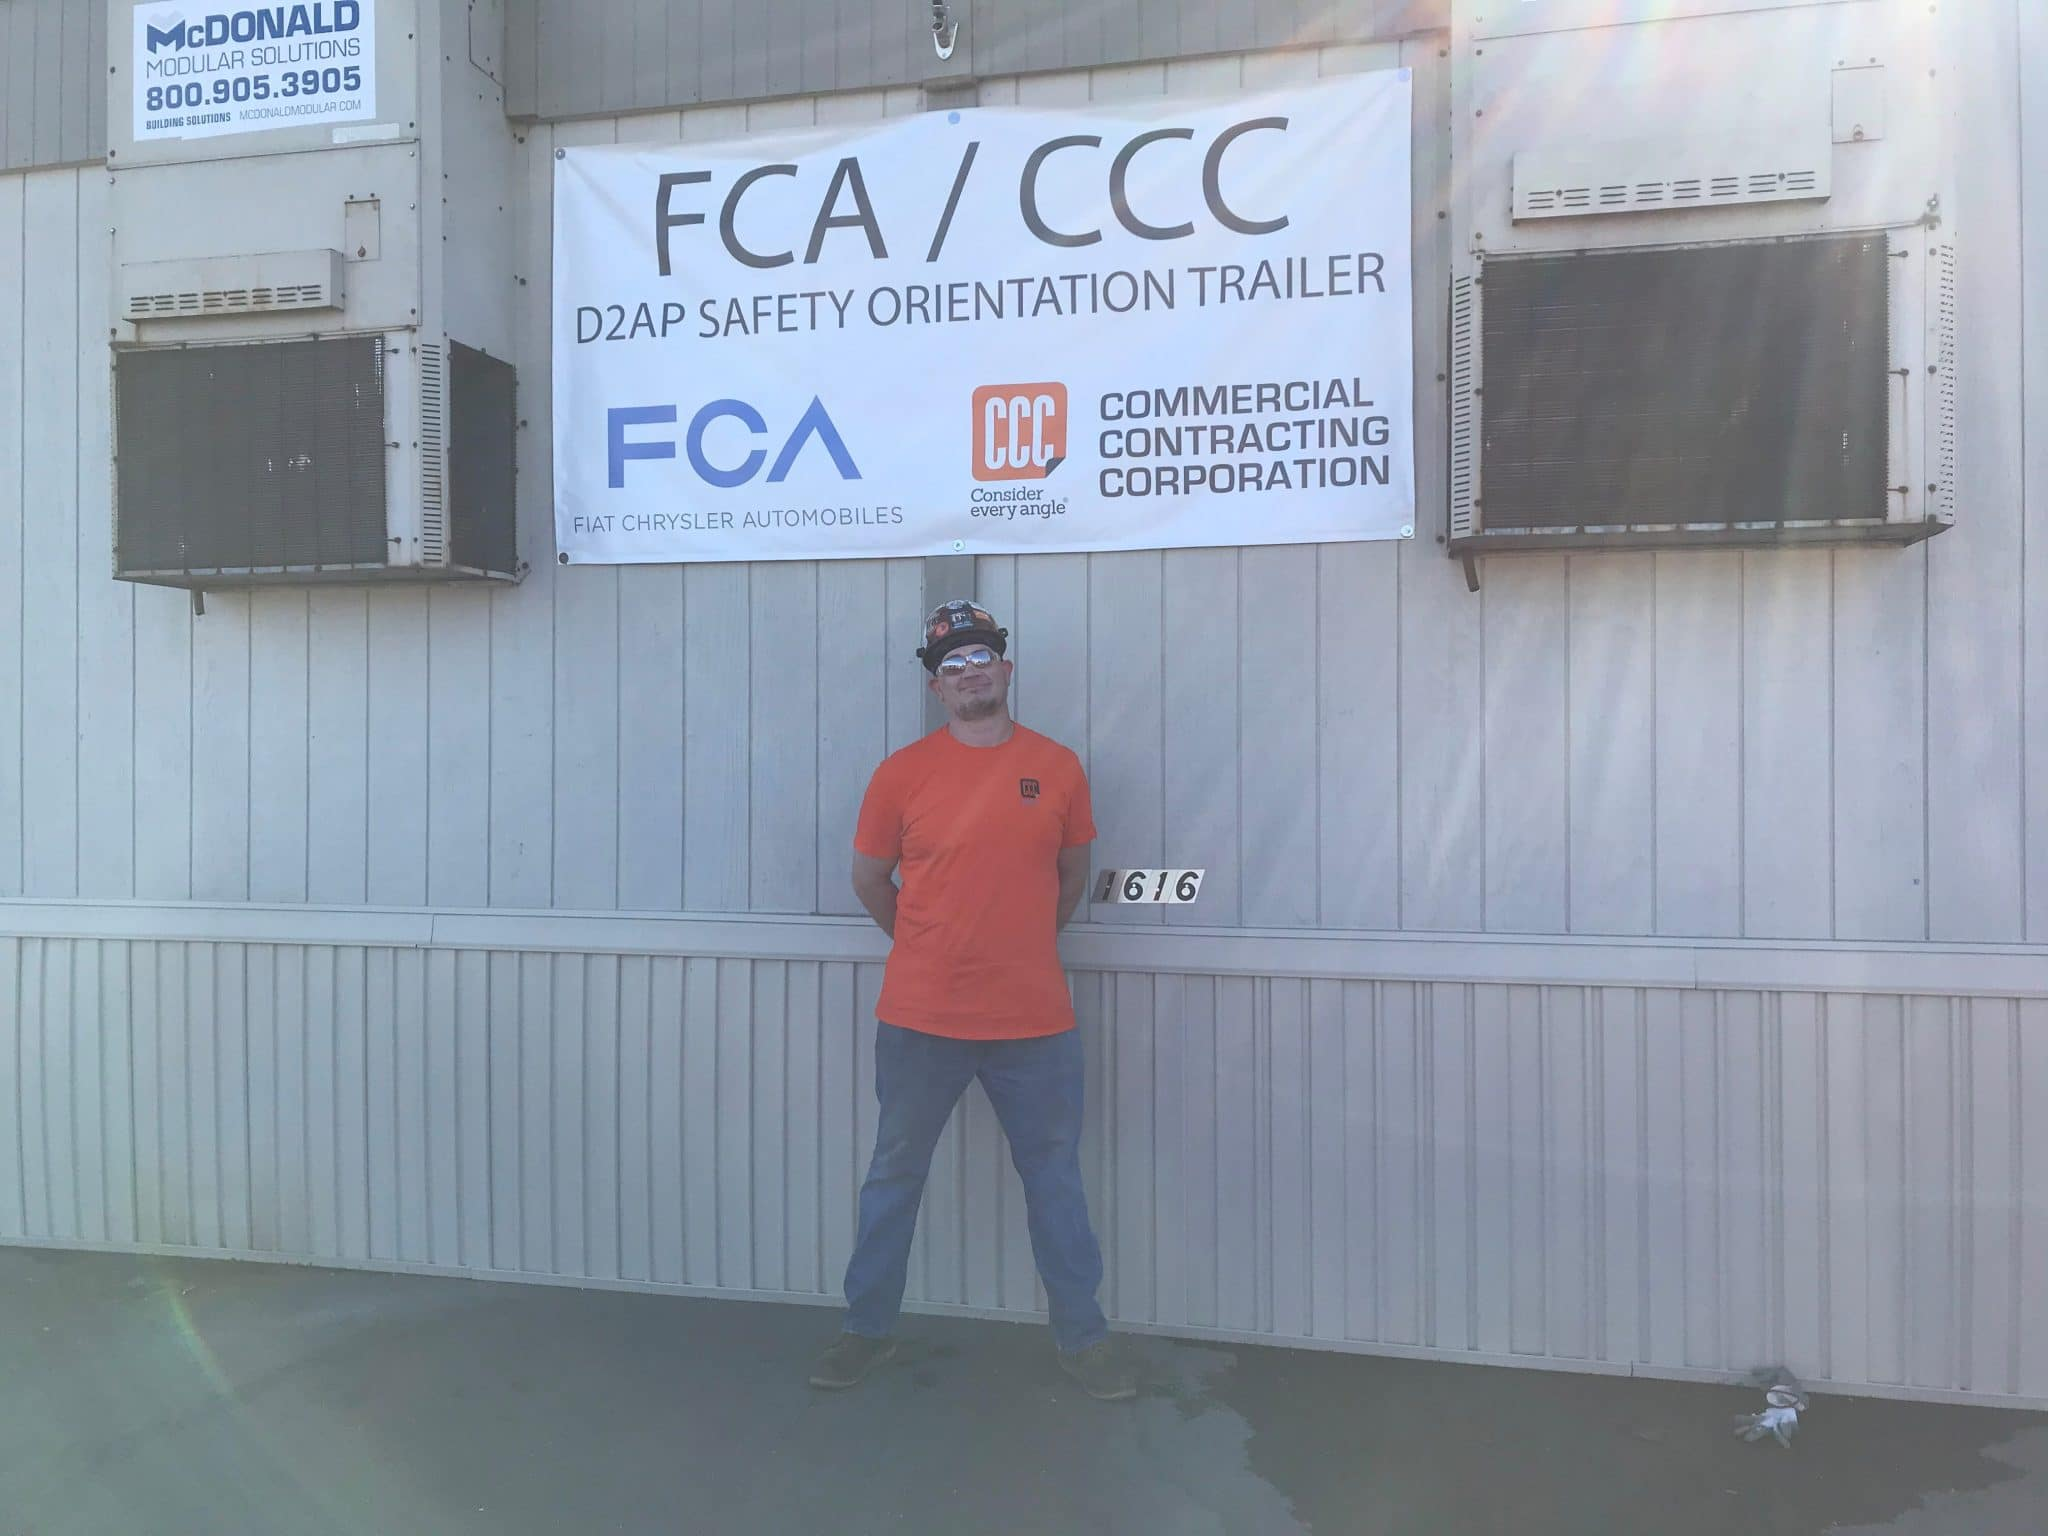 man with sunglasses stands below FCA/CCC sign